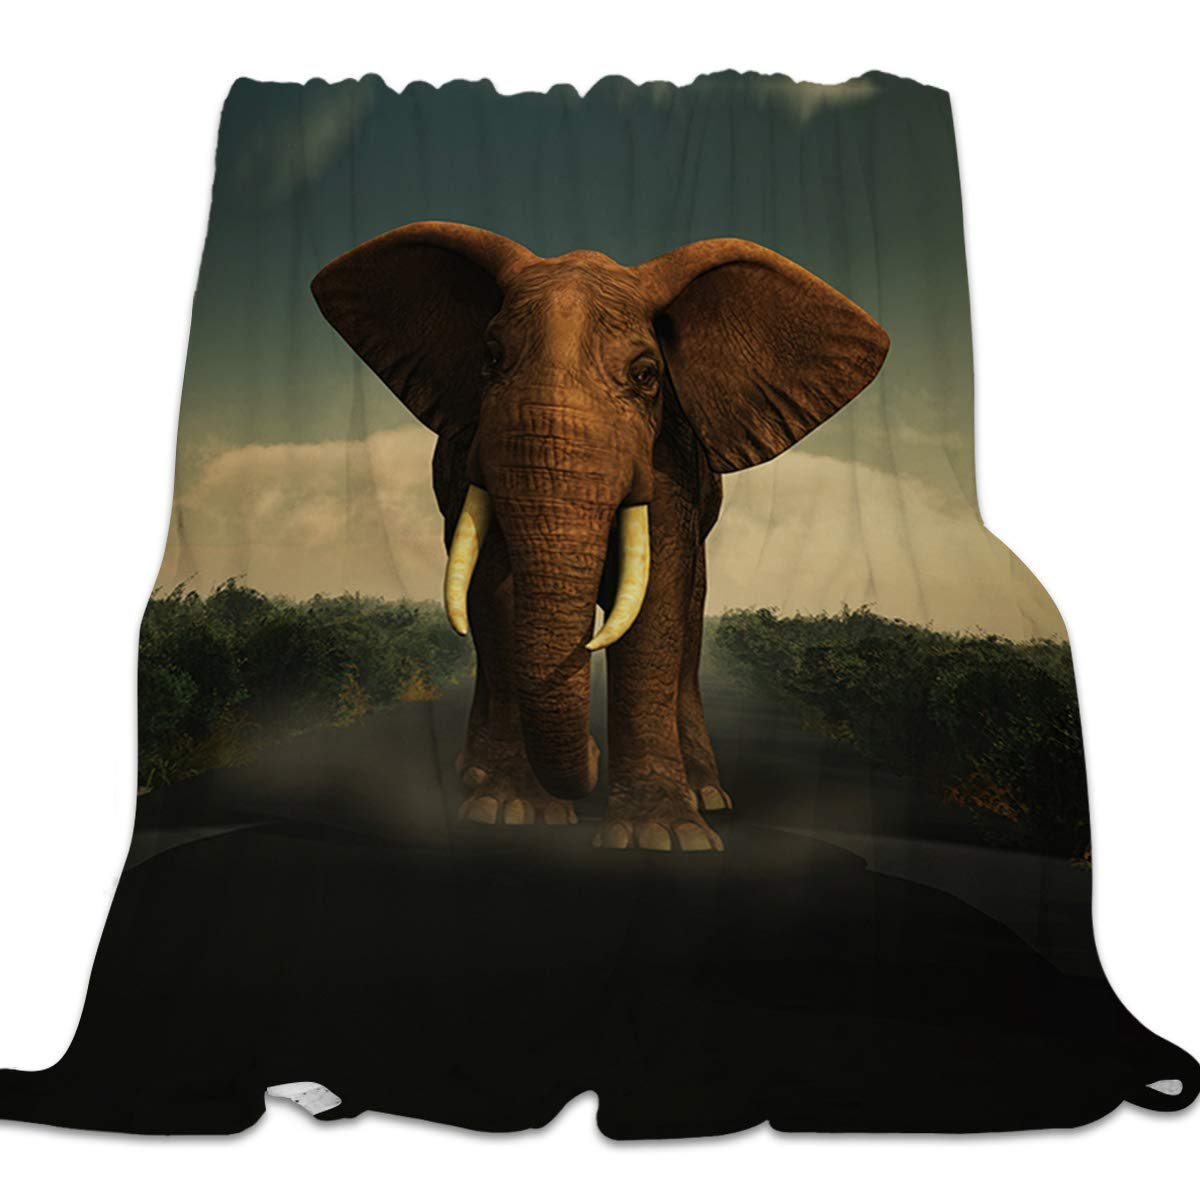 Elephant2035lyag3765 49x59inch=125x150cm YEHO Art Gallery Flannel Fleece Bed Blanket Super Soft Cozy ThrowBlankets for Kids Girls Boys,Lightweight Blankets for Bed Sofa Couch Chair Day Nap,Merry Christmas Universe Pattern,49x59inch